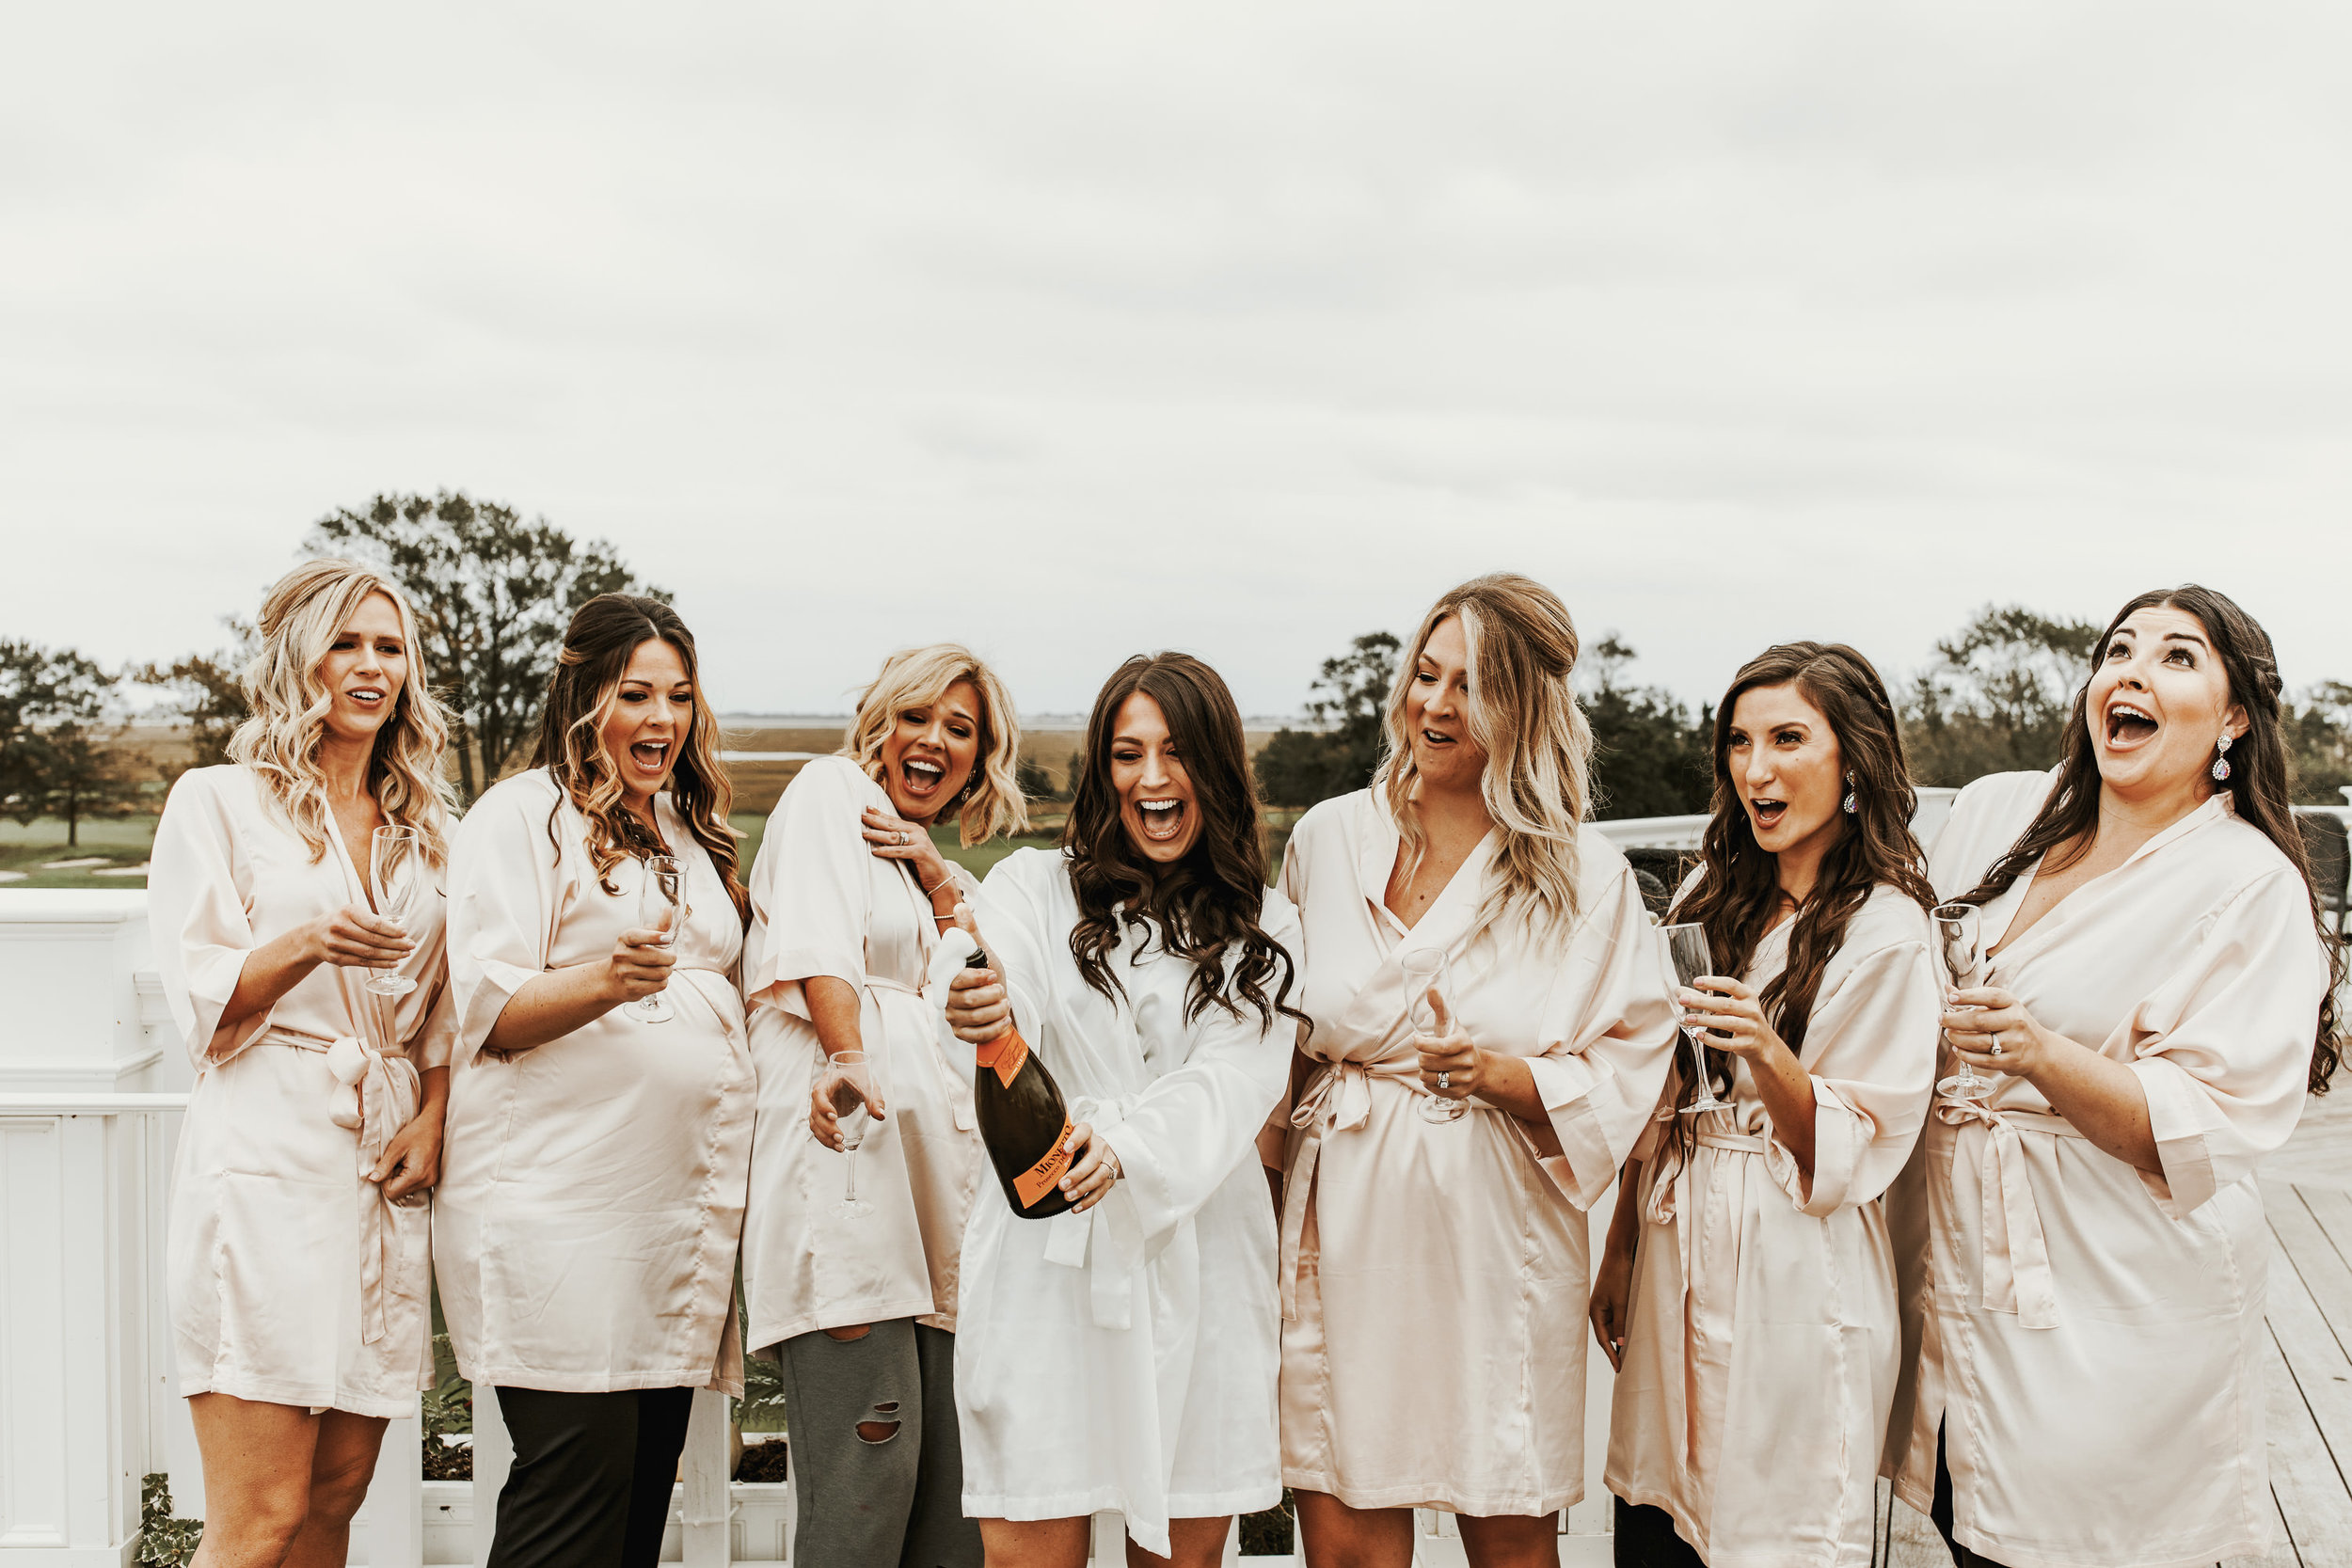 Champagne pop = must have bridal party photo